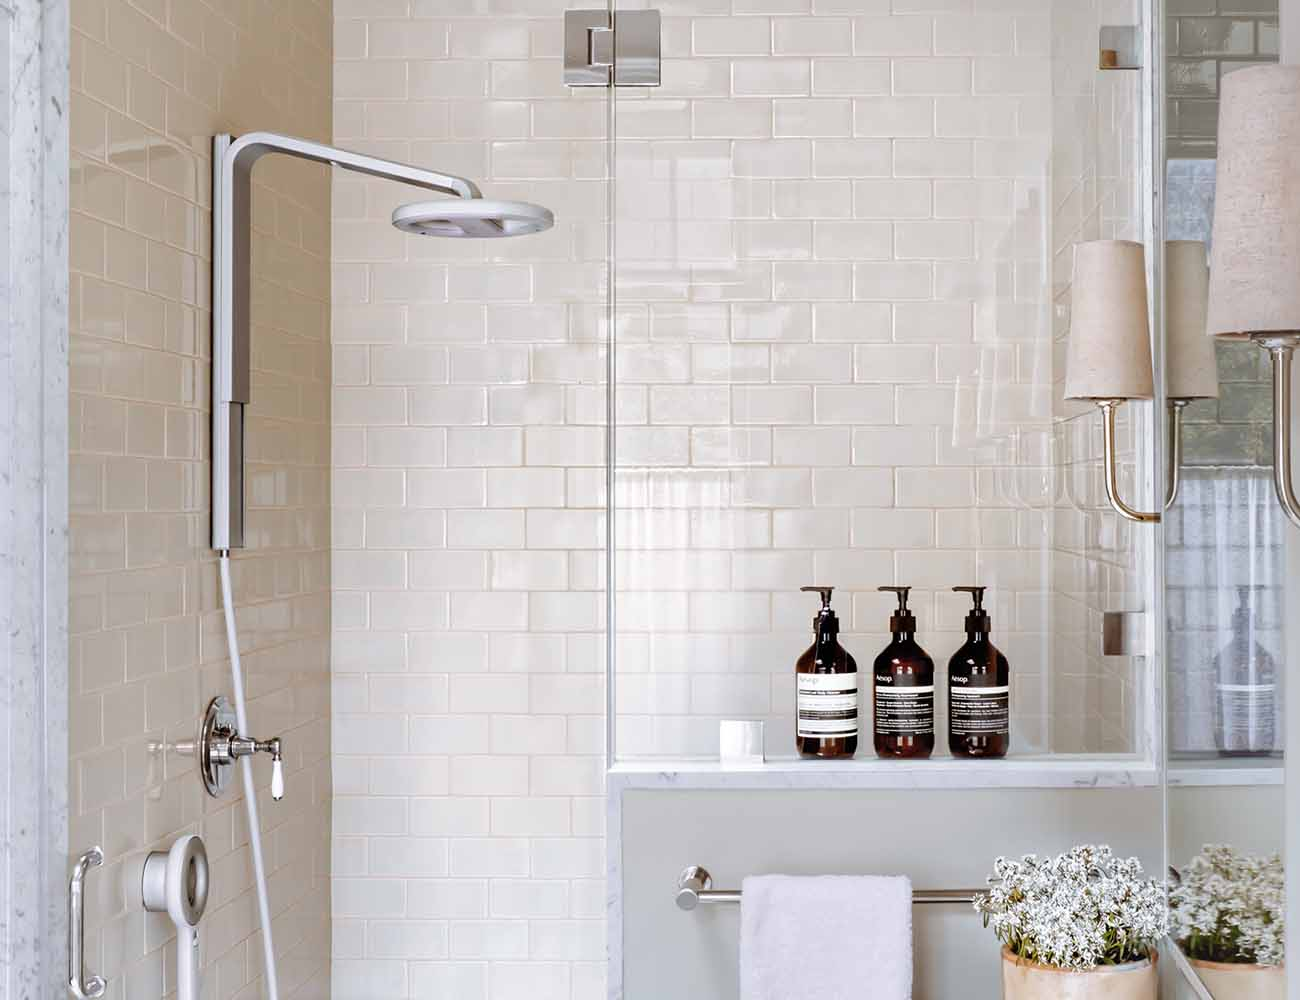 Nebia Shower – Better Experience, 70% Less Water